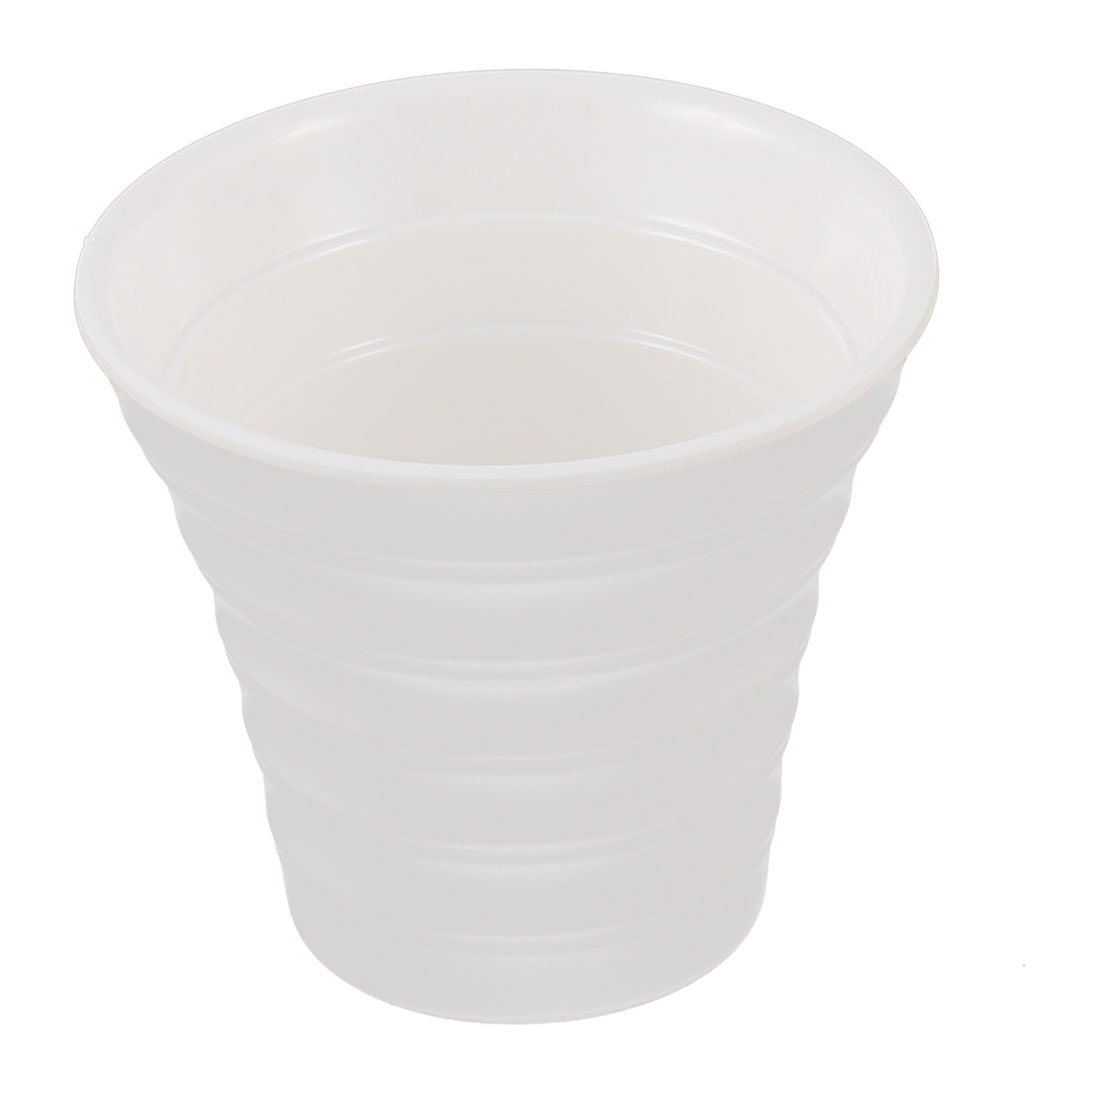 Home Restaurant Water Tea Beverage Drinking Cup White